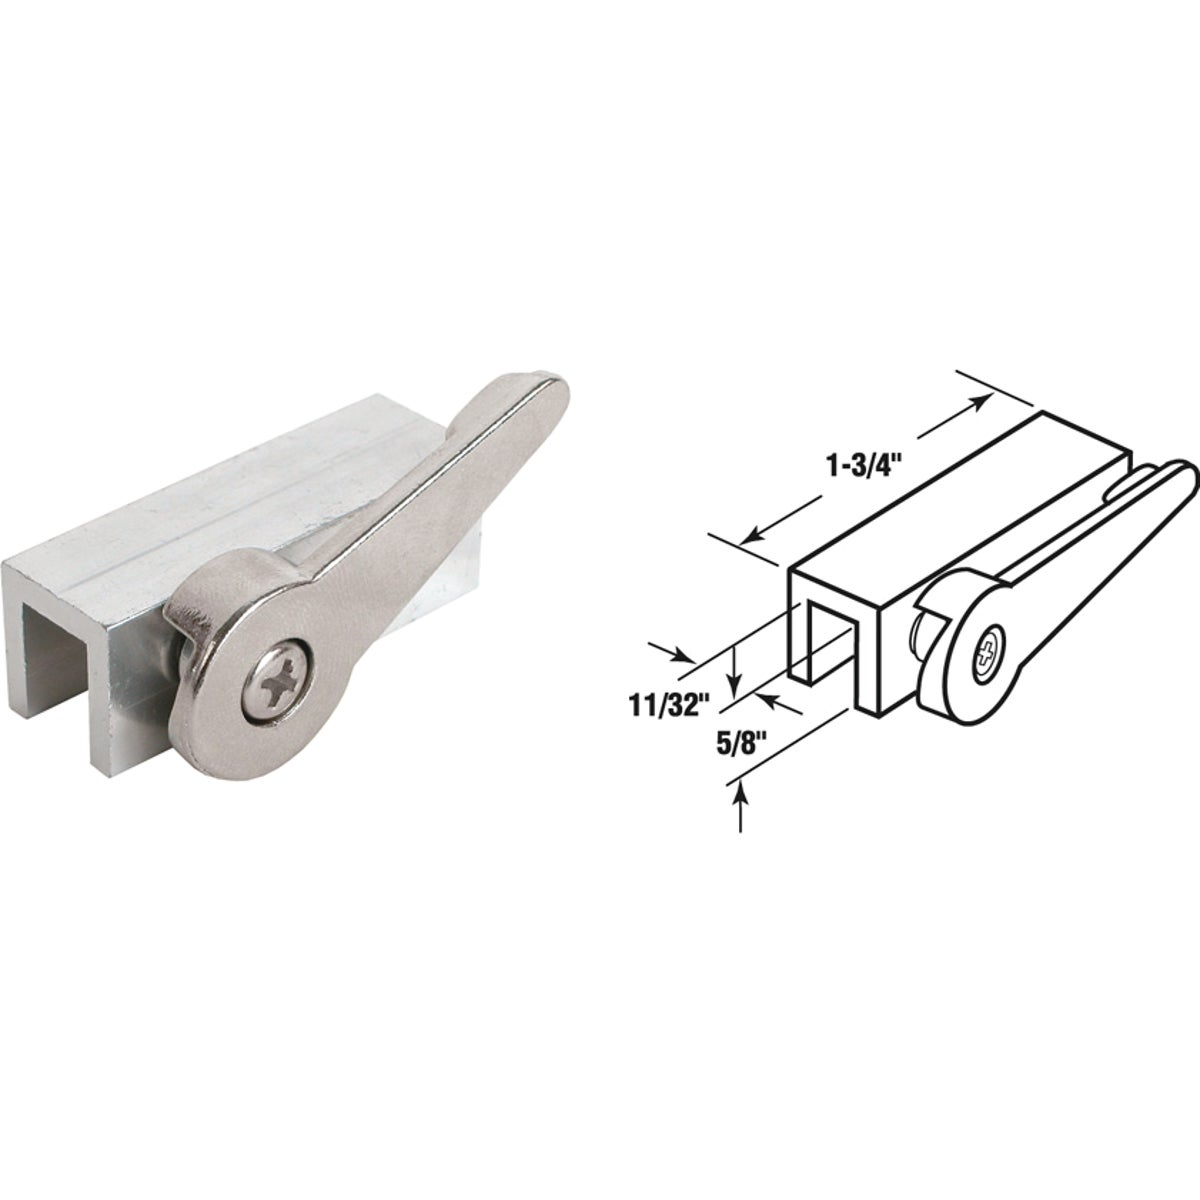 ALUM LEVER WINDOW LOCK - U 9824 by Prime Line Products